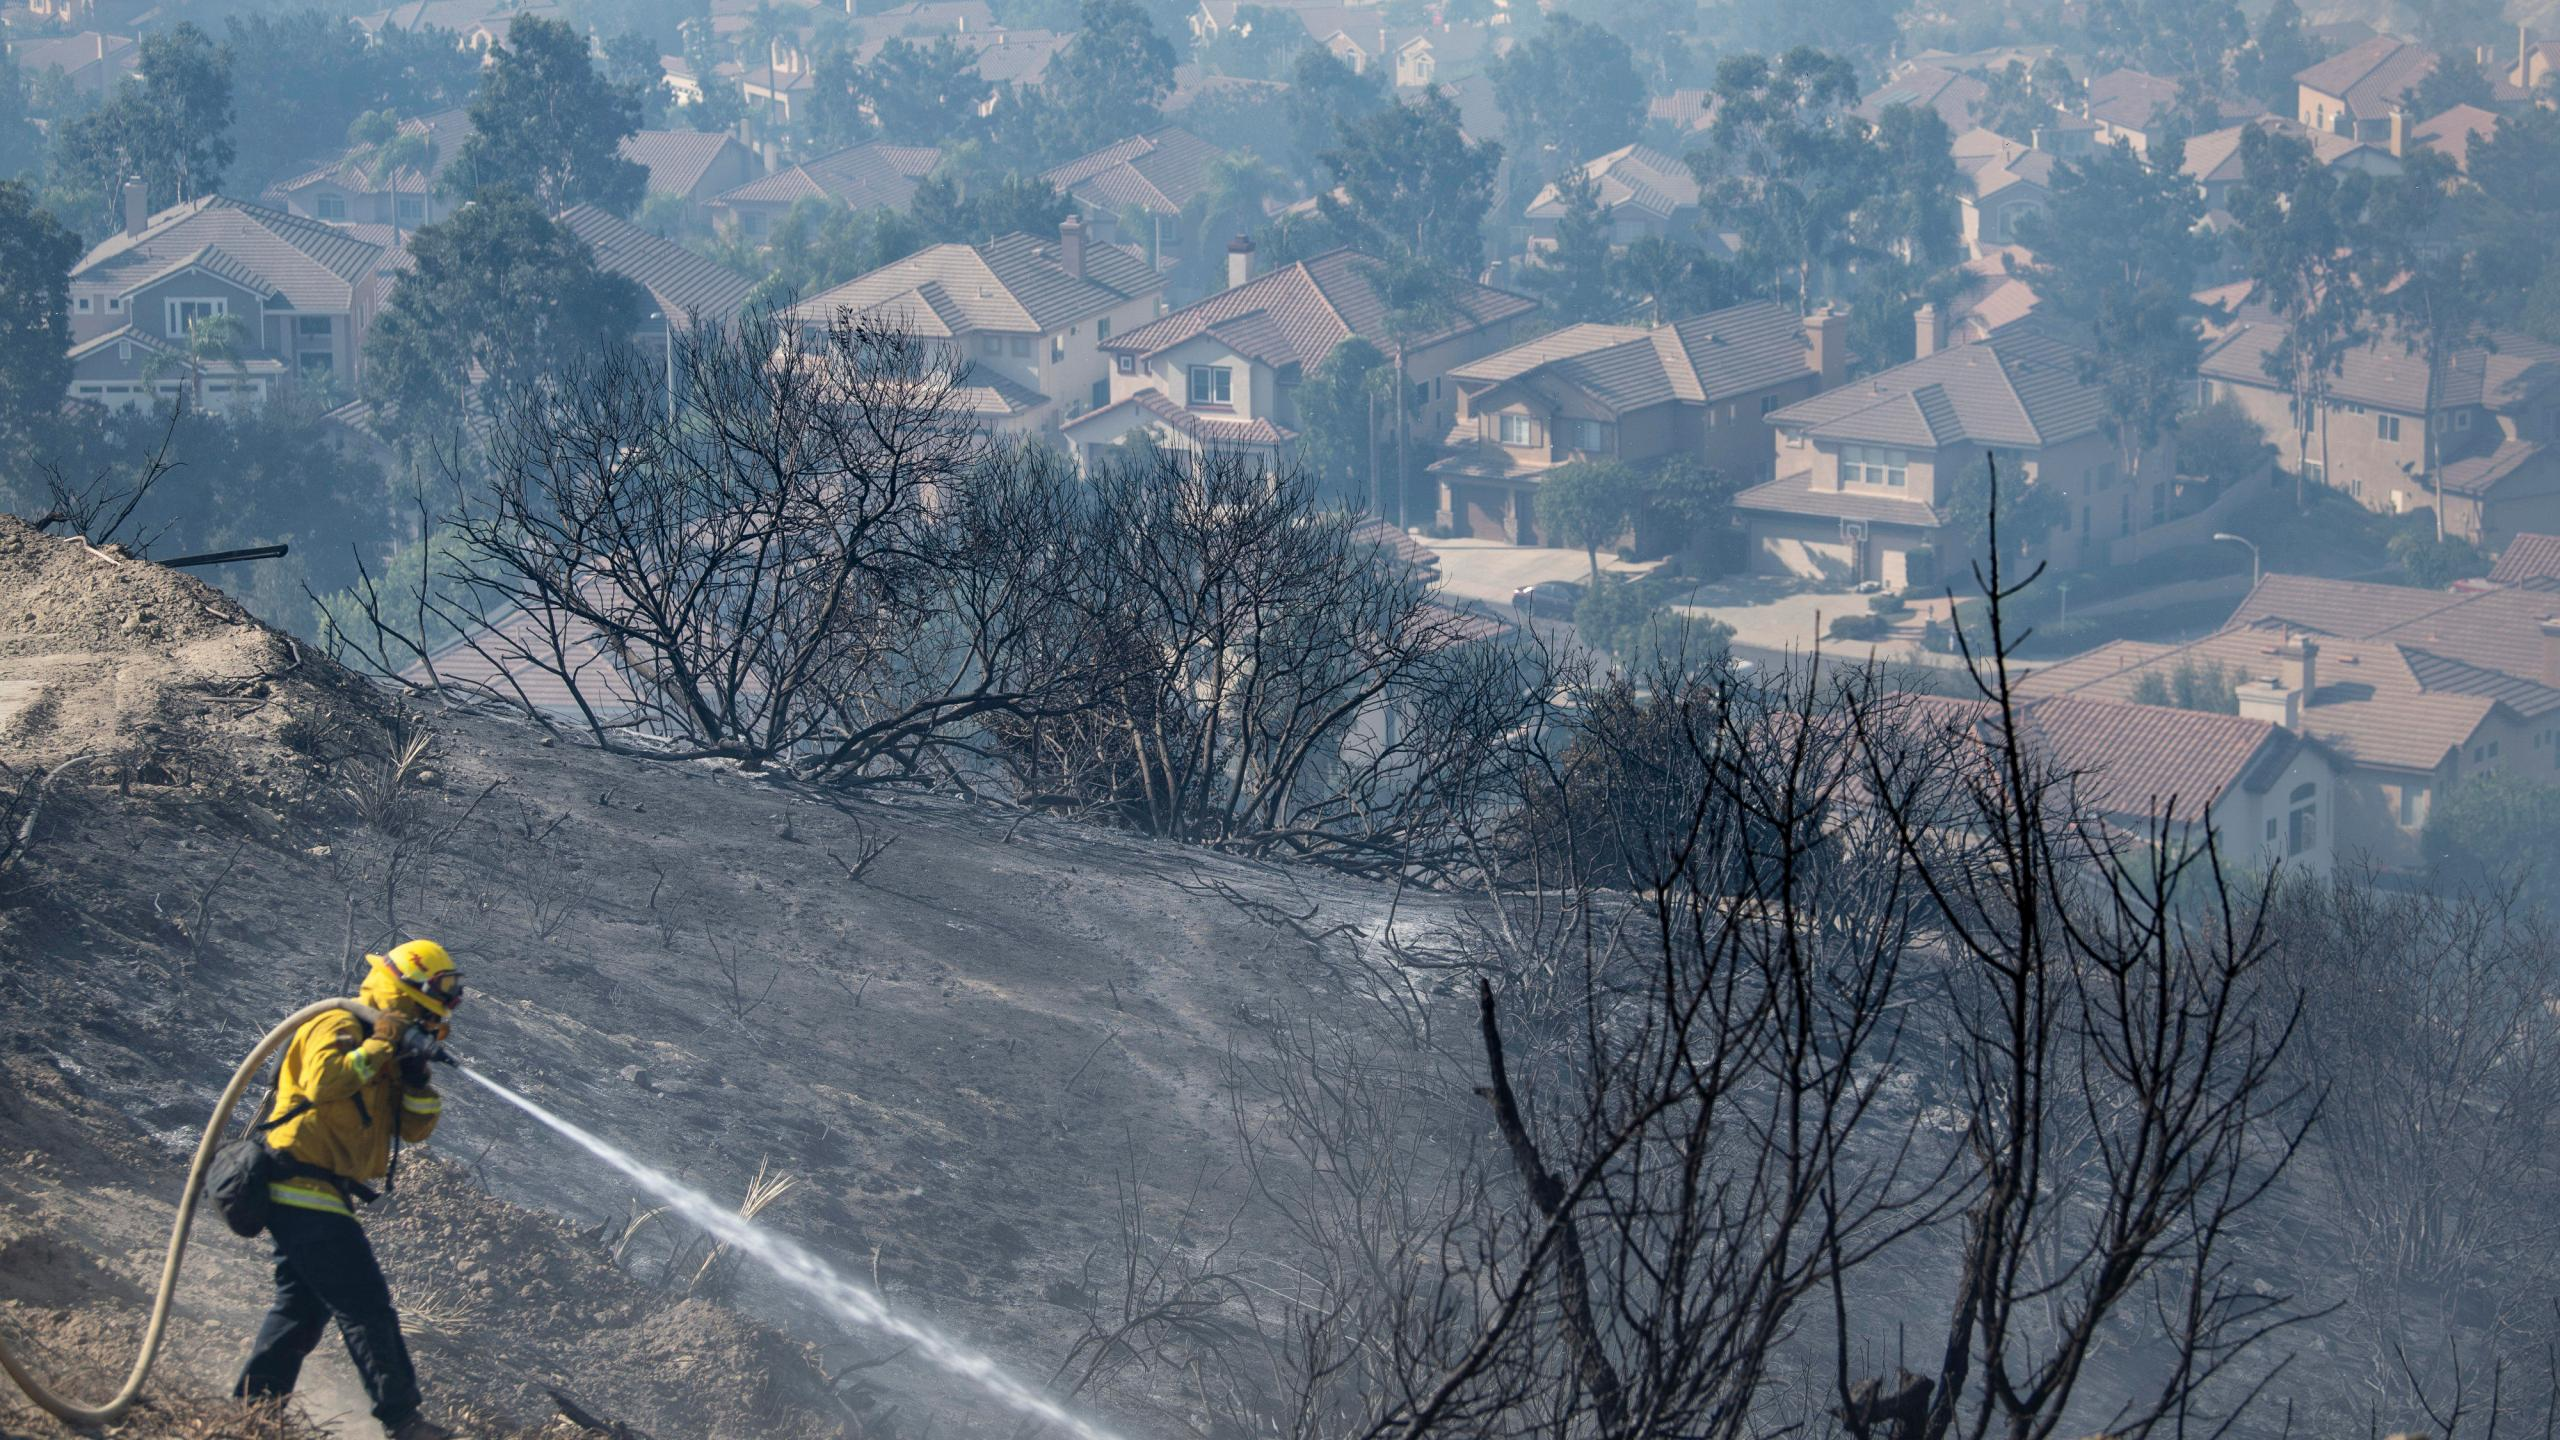 Firefighters work flames from the Silverado Fire atop a hill above homes in Foothill Ranch where a mandatory evacuation is in place on Tuesday, Oct. 27, 2020. (Mindy Schauer/The Orange County Register via AP)